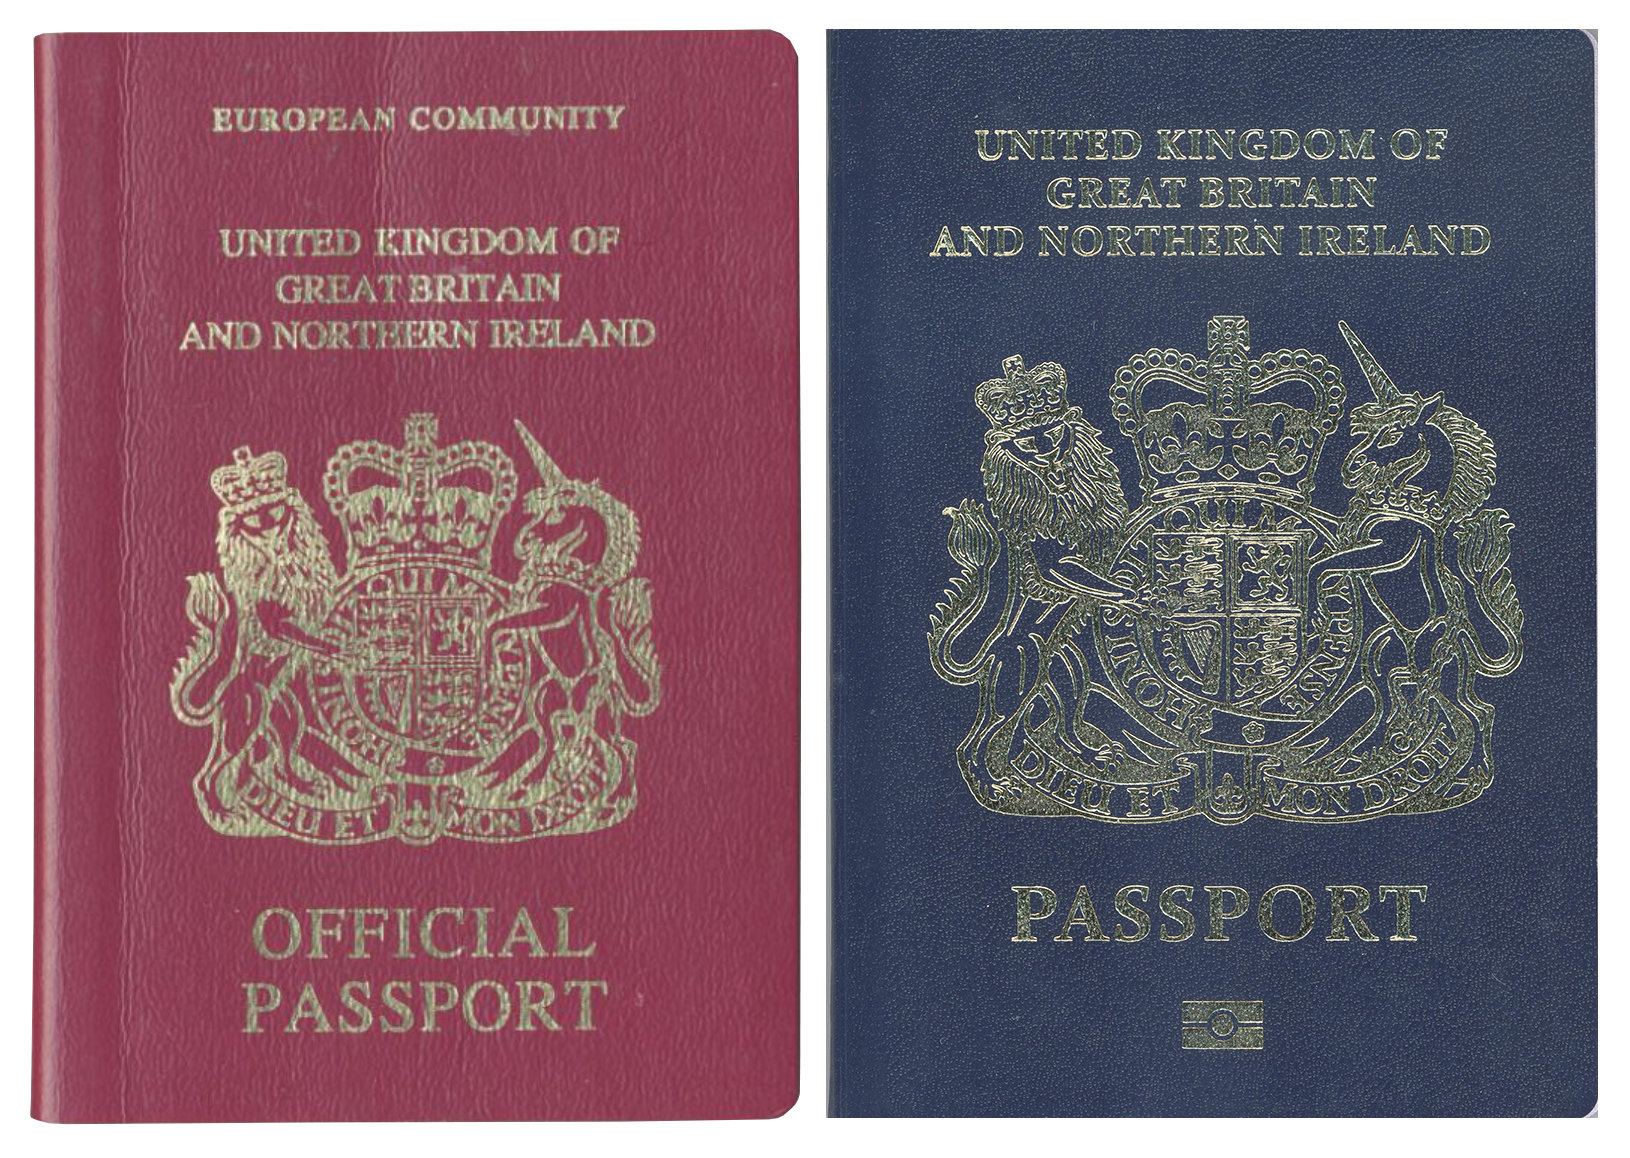 Brexit Is Happening Now (at Least on Some U.K. Passports)